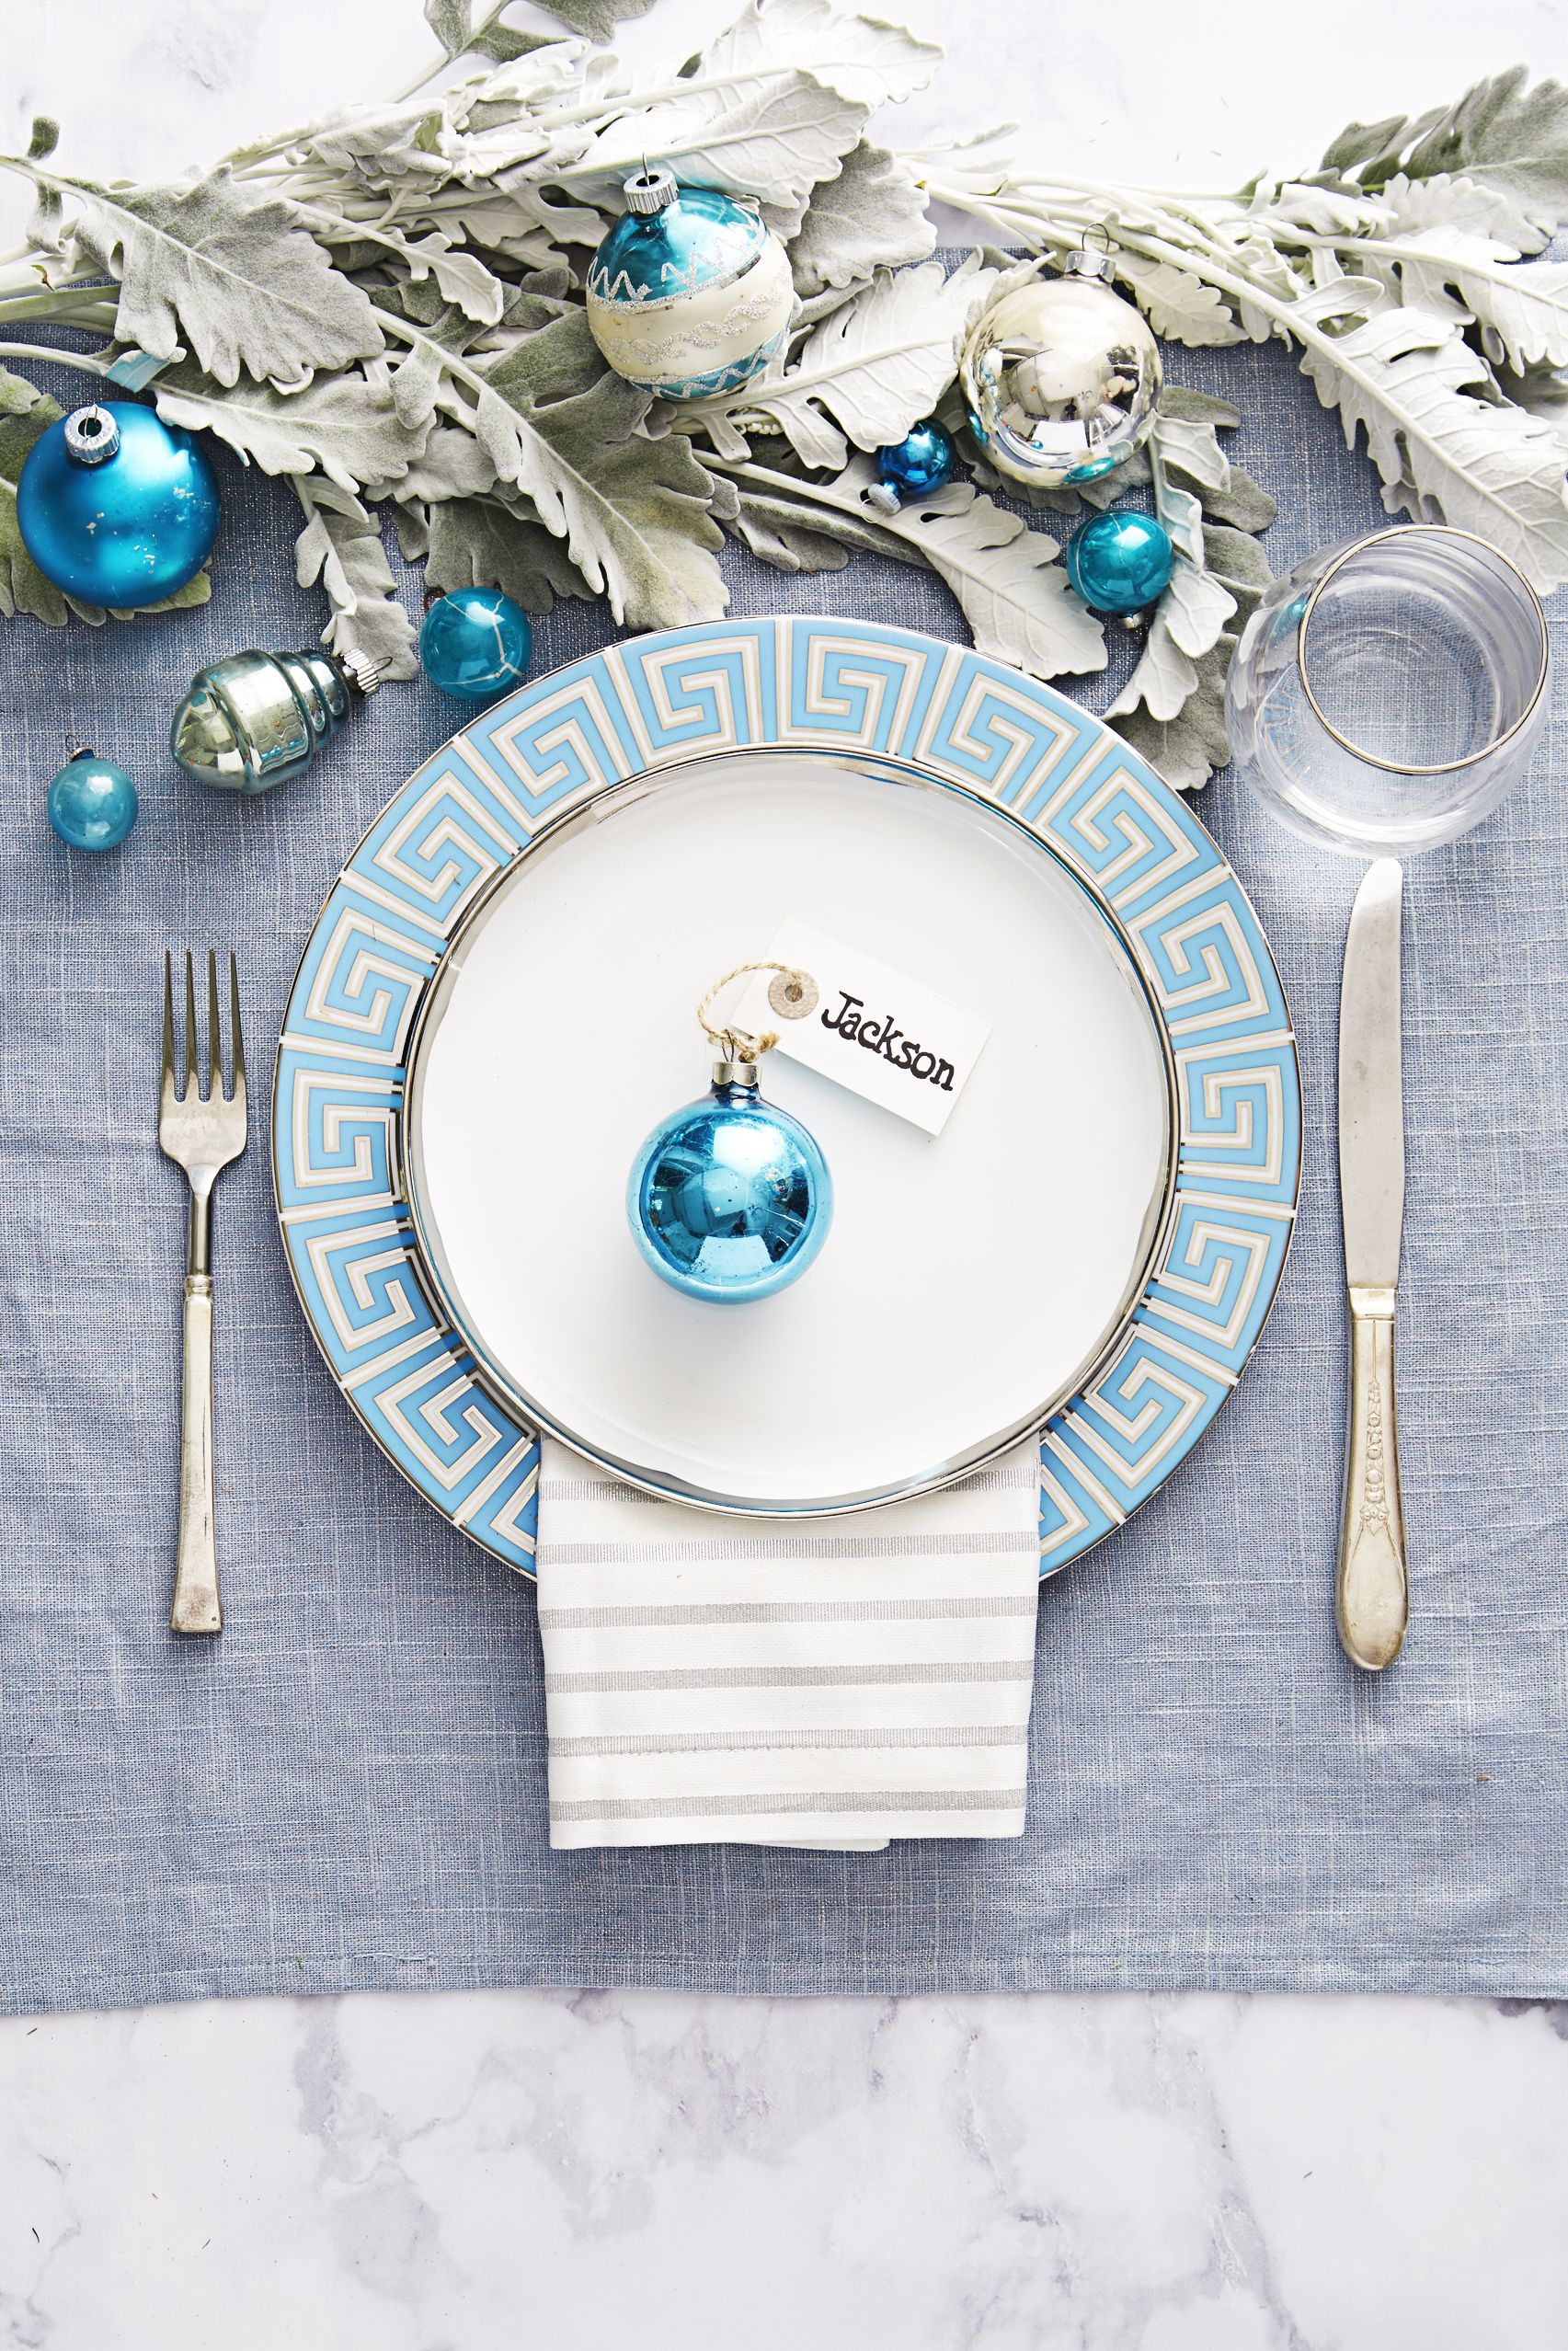 40 Diy Christmas Table Decorations And Settings Centerpieces Ideas For Your